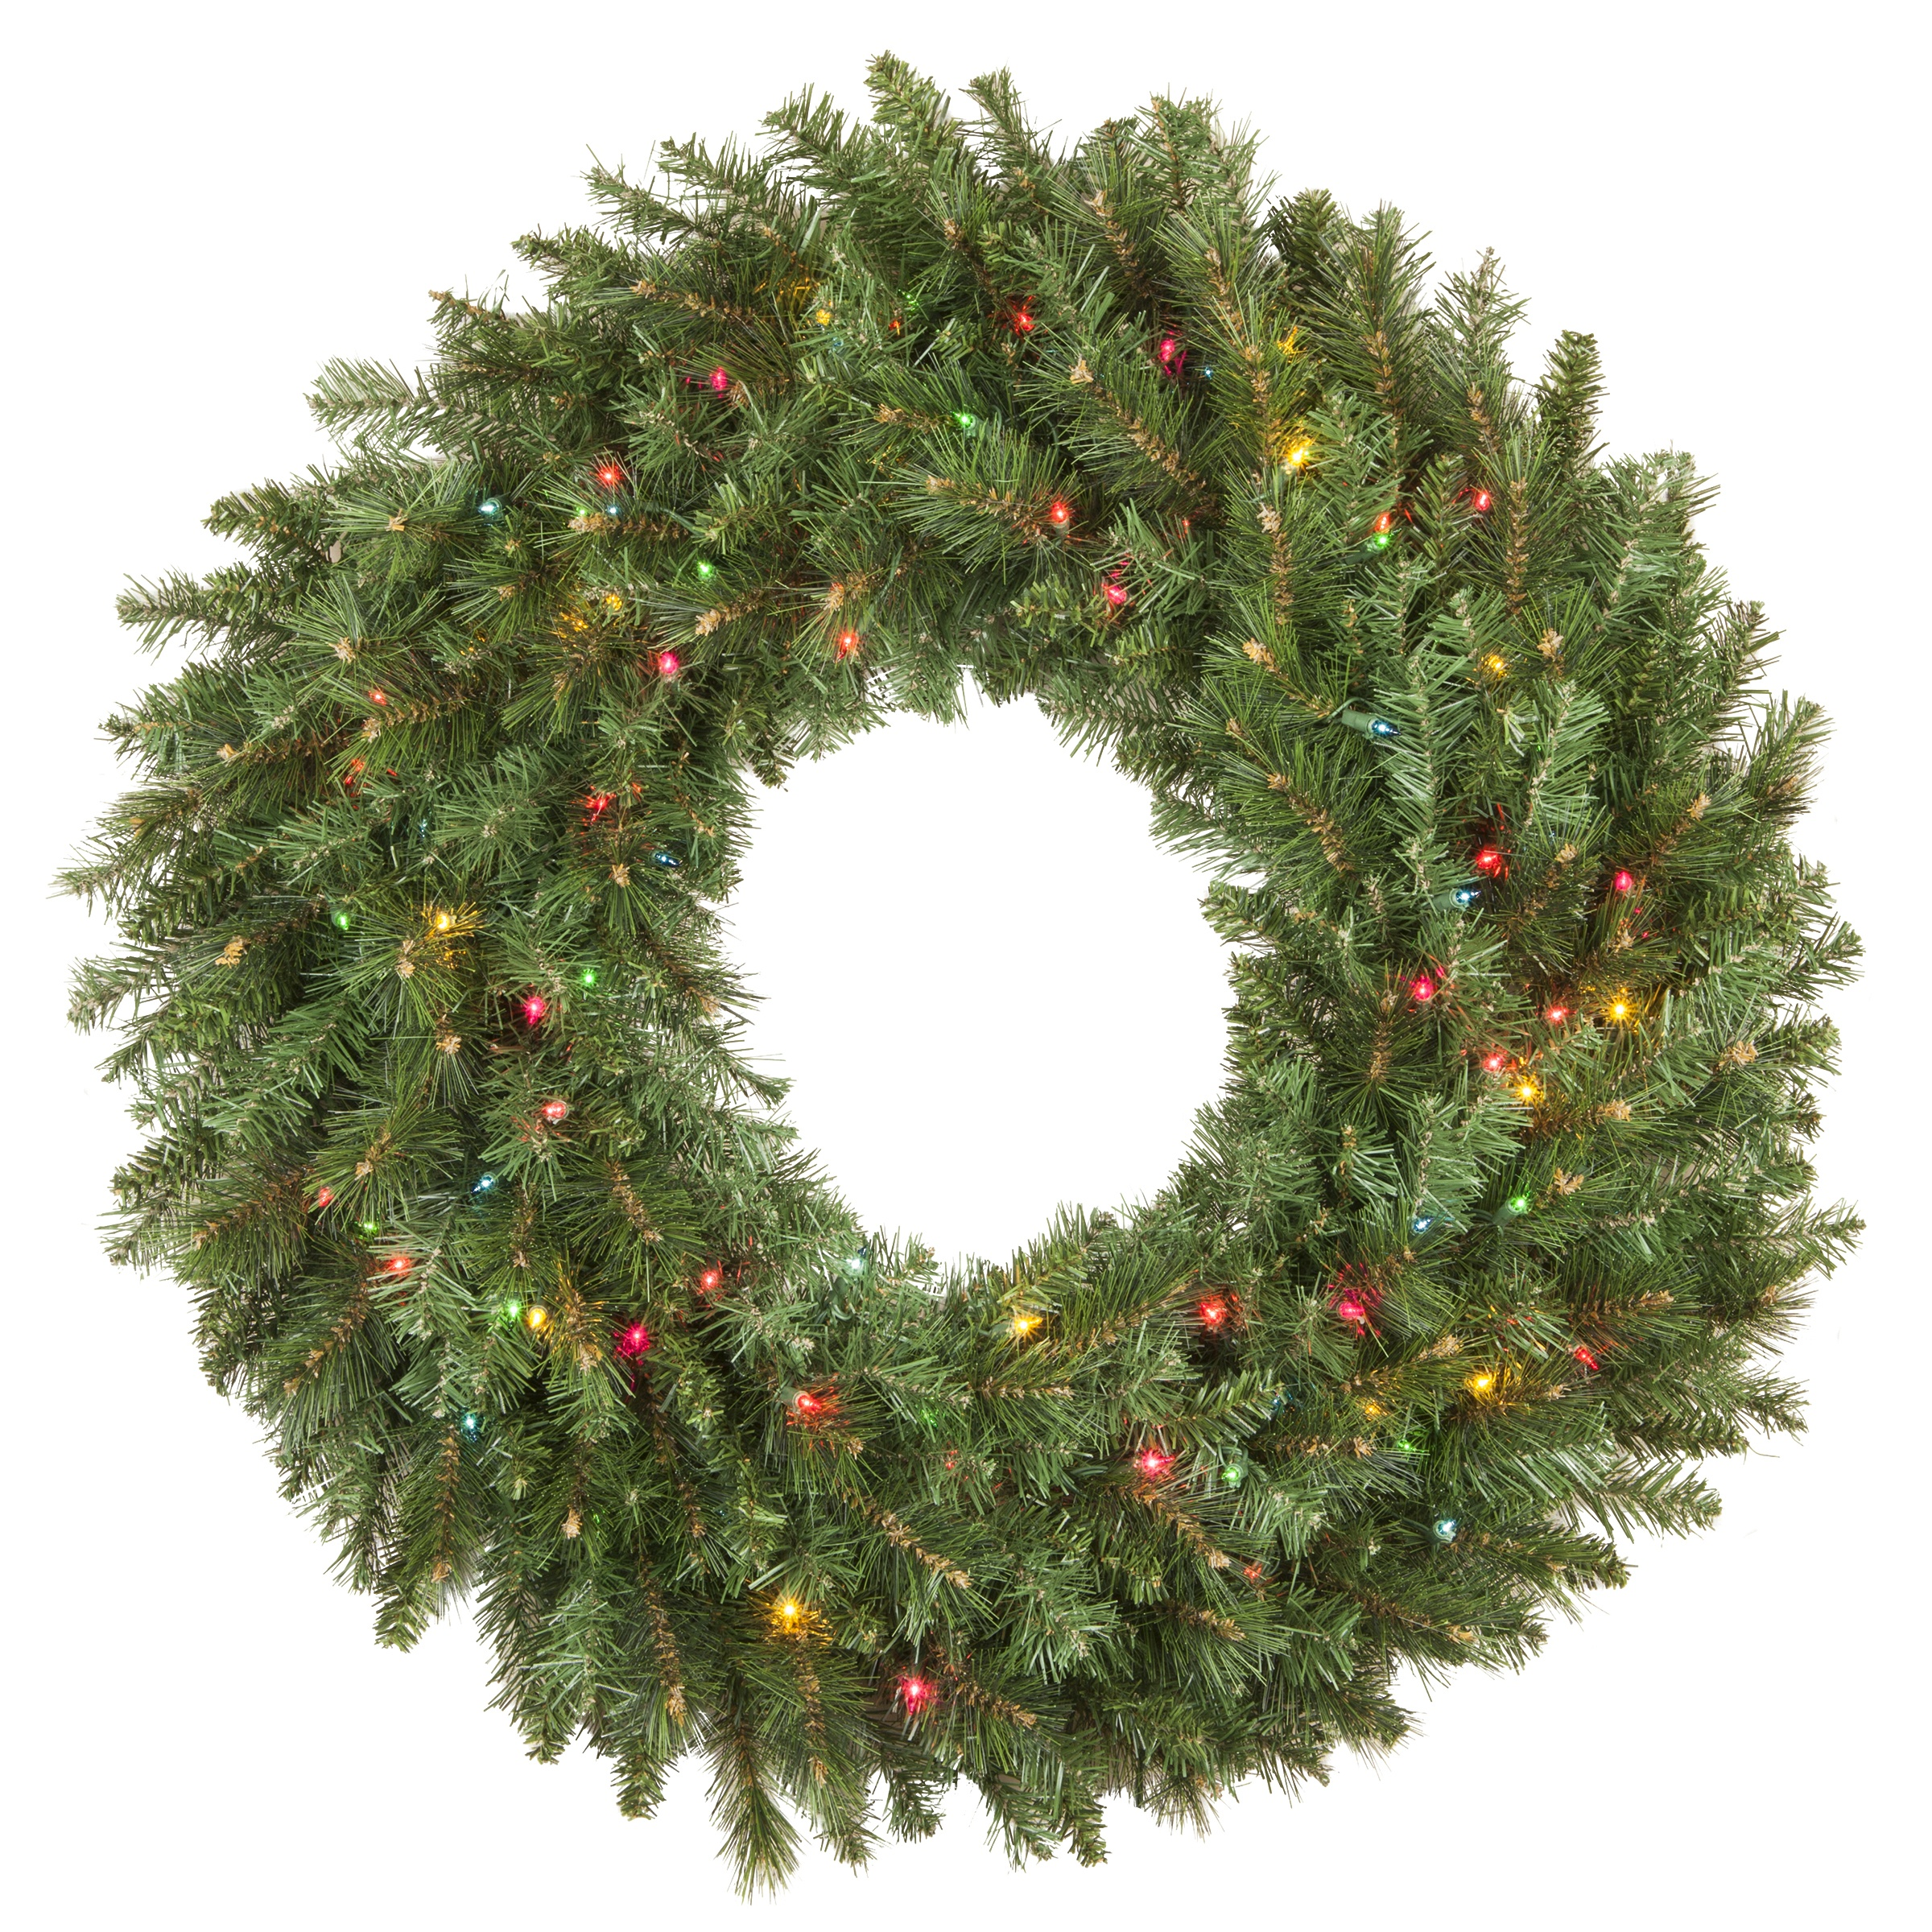 Artificial Christmas Wreaths Brighton Fir Prelit